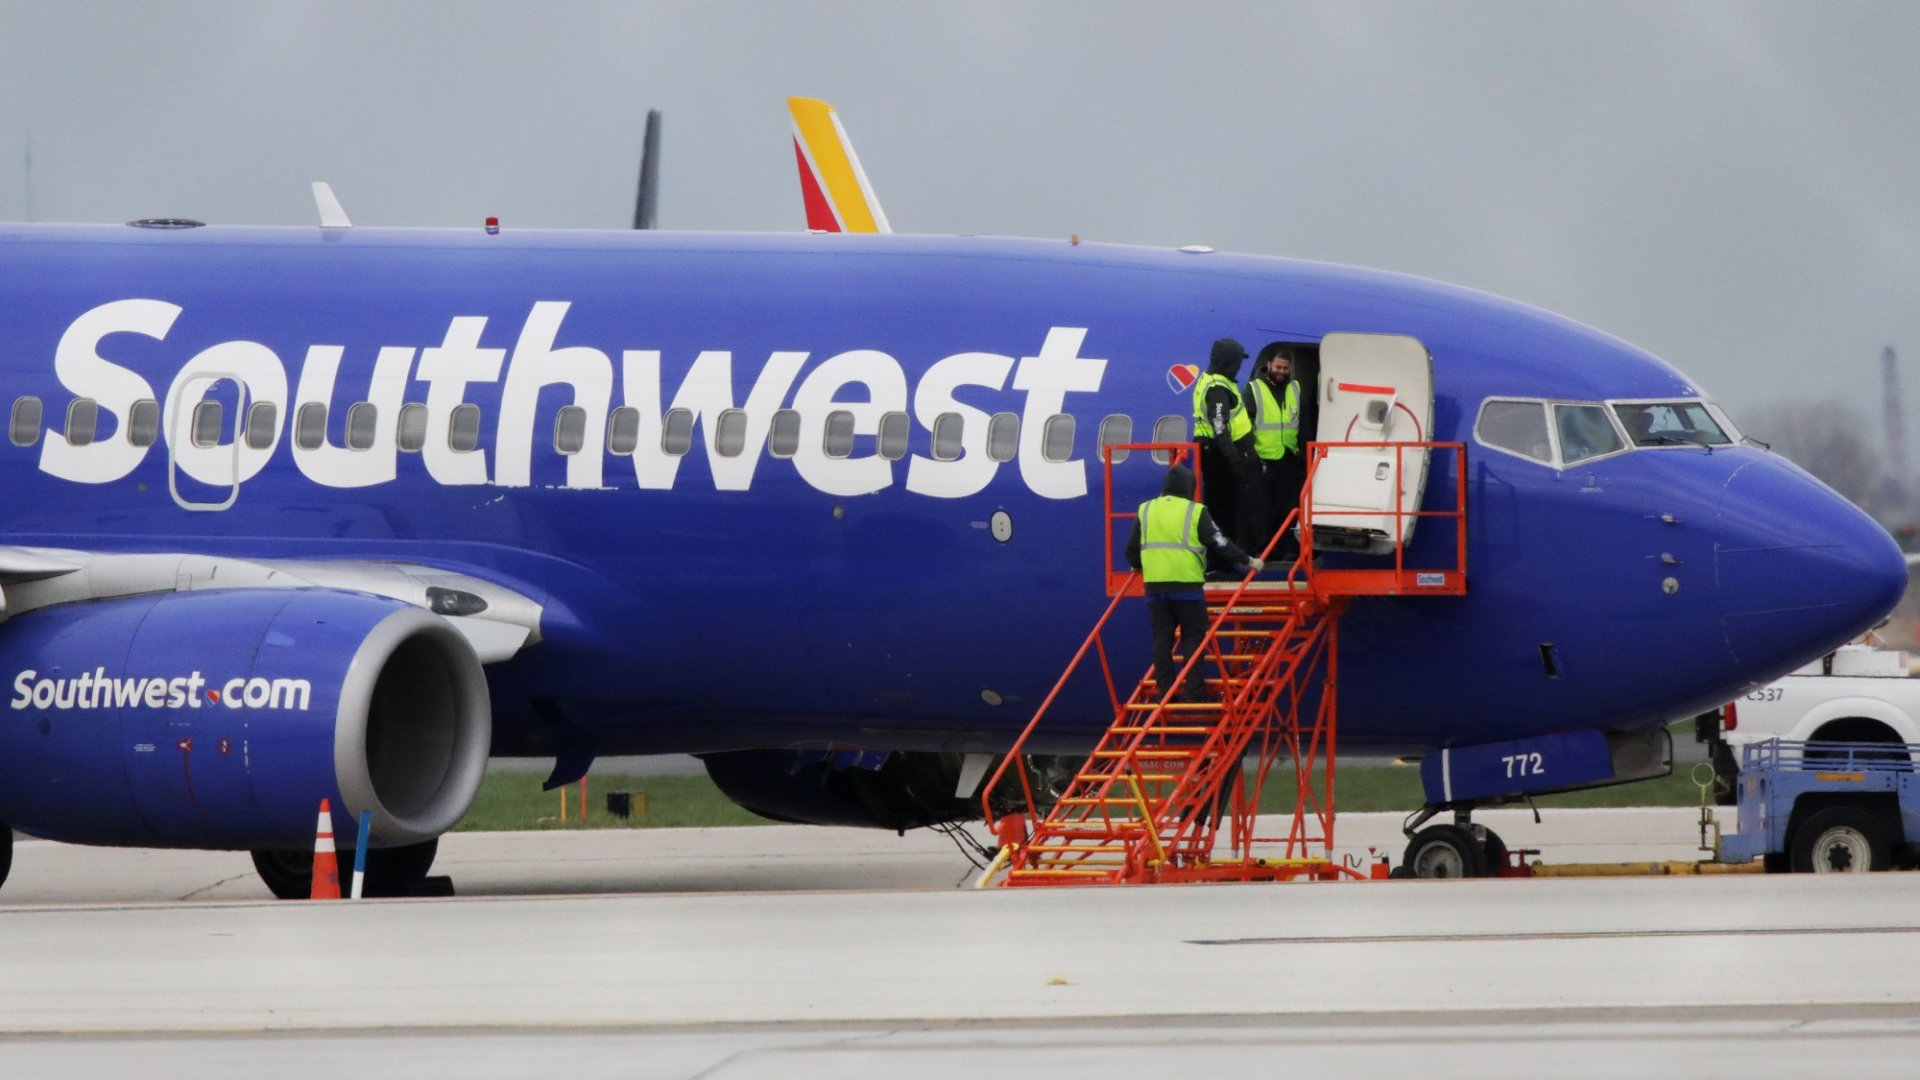 Southwest Had Another Emergency Landing. But Here's the Really Good News